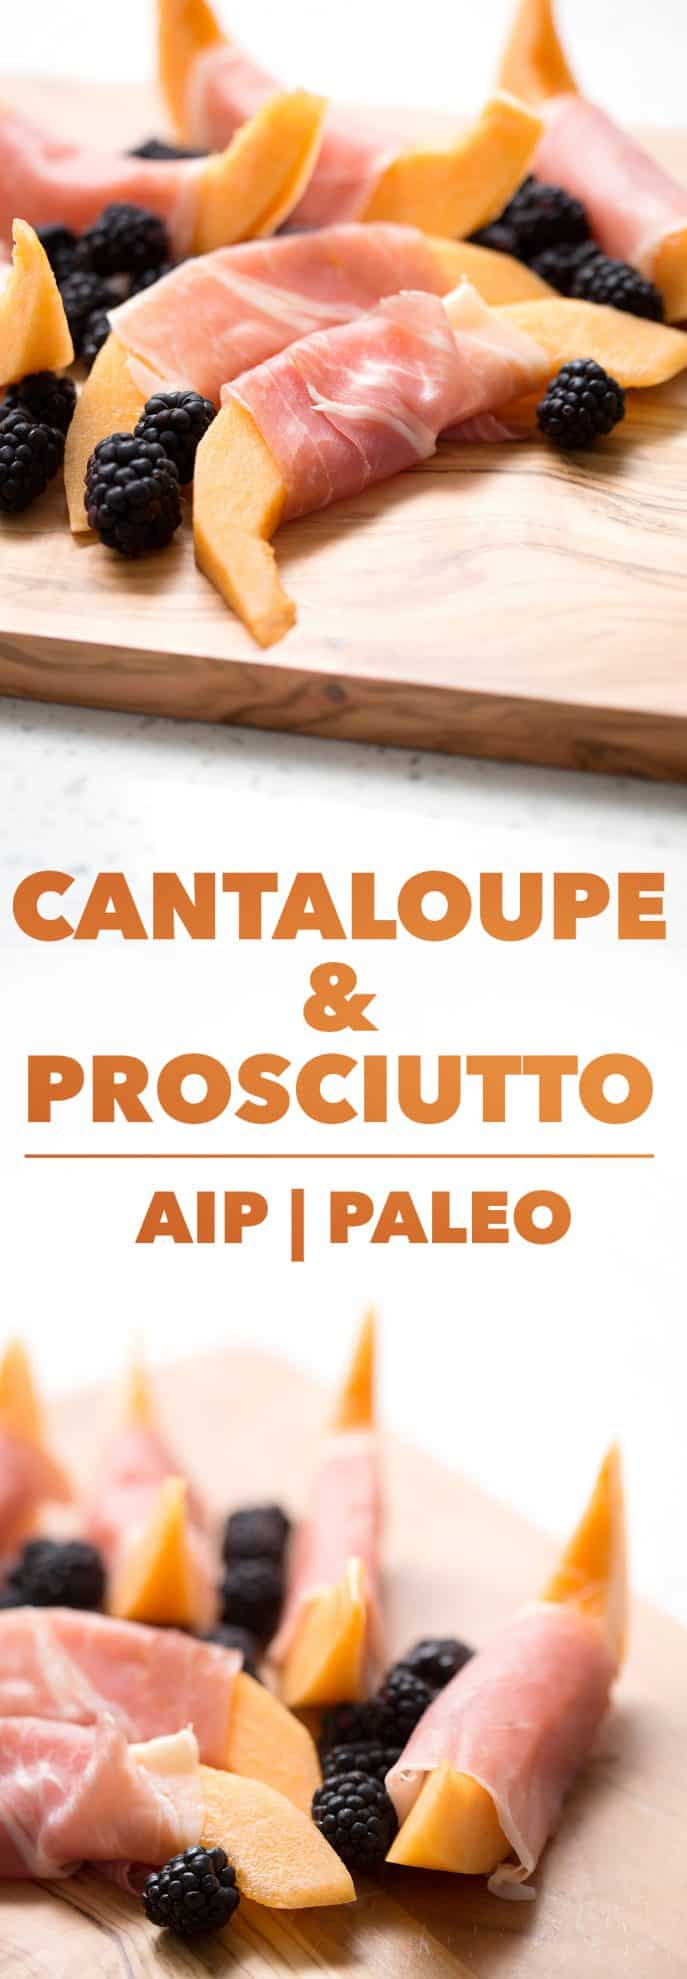 cantaloupe and prosciutto with blackberries on cutting board and white background